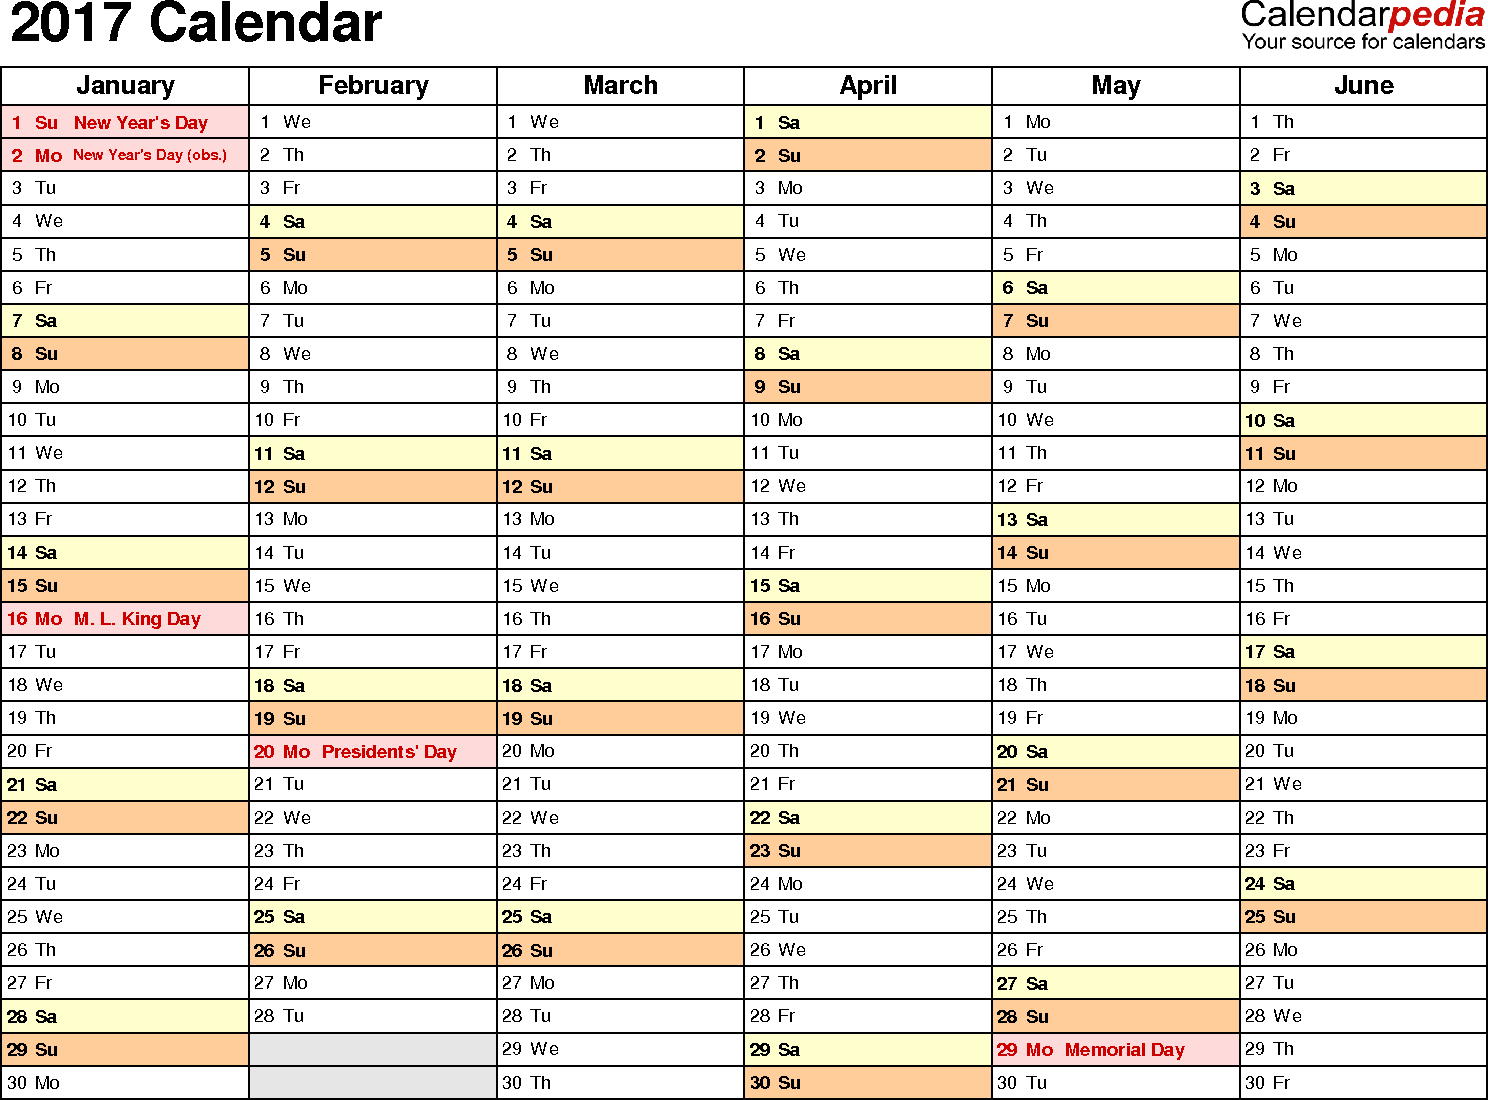 Ediblewildsus  Nice  Calendar  Download  Free Printable Excel Templates Xls With Inspiring Template   Calendar For Excel Months Horizontally  Pages Landscape Orientation With Breathtaking Pv Calculation Excel Also Excel Time Line In Addition Average Calculation In Excel And Excel Formulas Count As Well As Free Monthly Budget Worksheet Excel Additionally Round Up Function In Excel From Calendarpediacom With Ediblewildsus  Inspiring  Calendar  Download  Free Printable Excel Templates Xls With Breathtaking Template   Calendar For Excel Months Horizontally  Pages Landscape Orientation And Nice Pv Calculation Excel Also Excel Time Line In Addition Average Calculation In Excel From Calendarpediacom